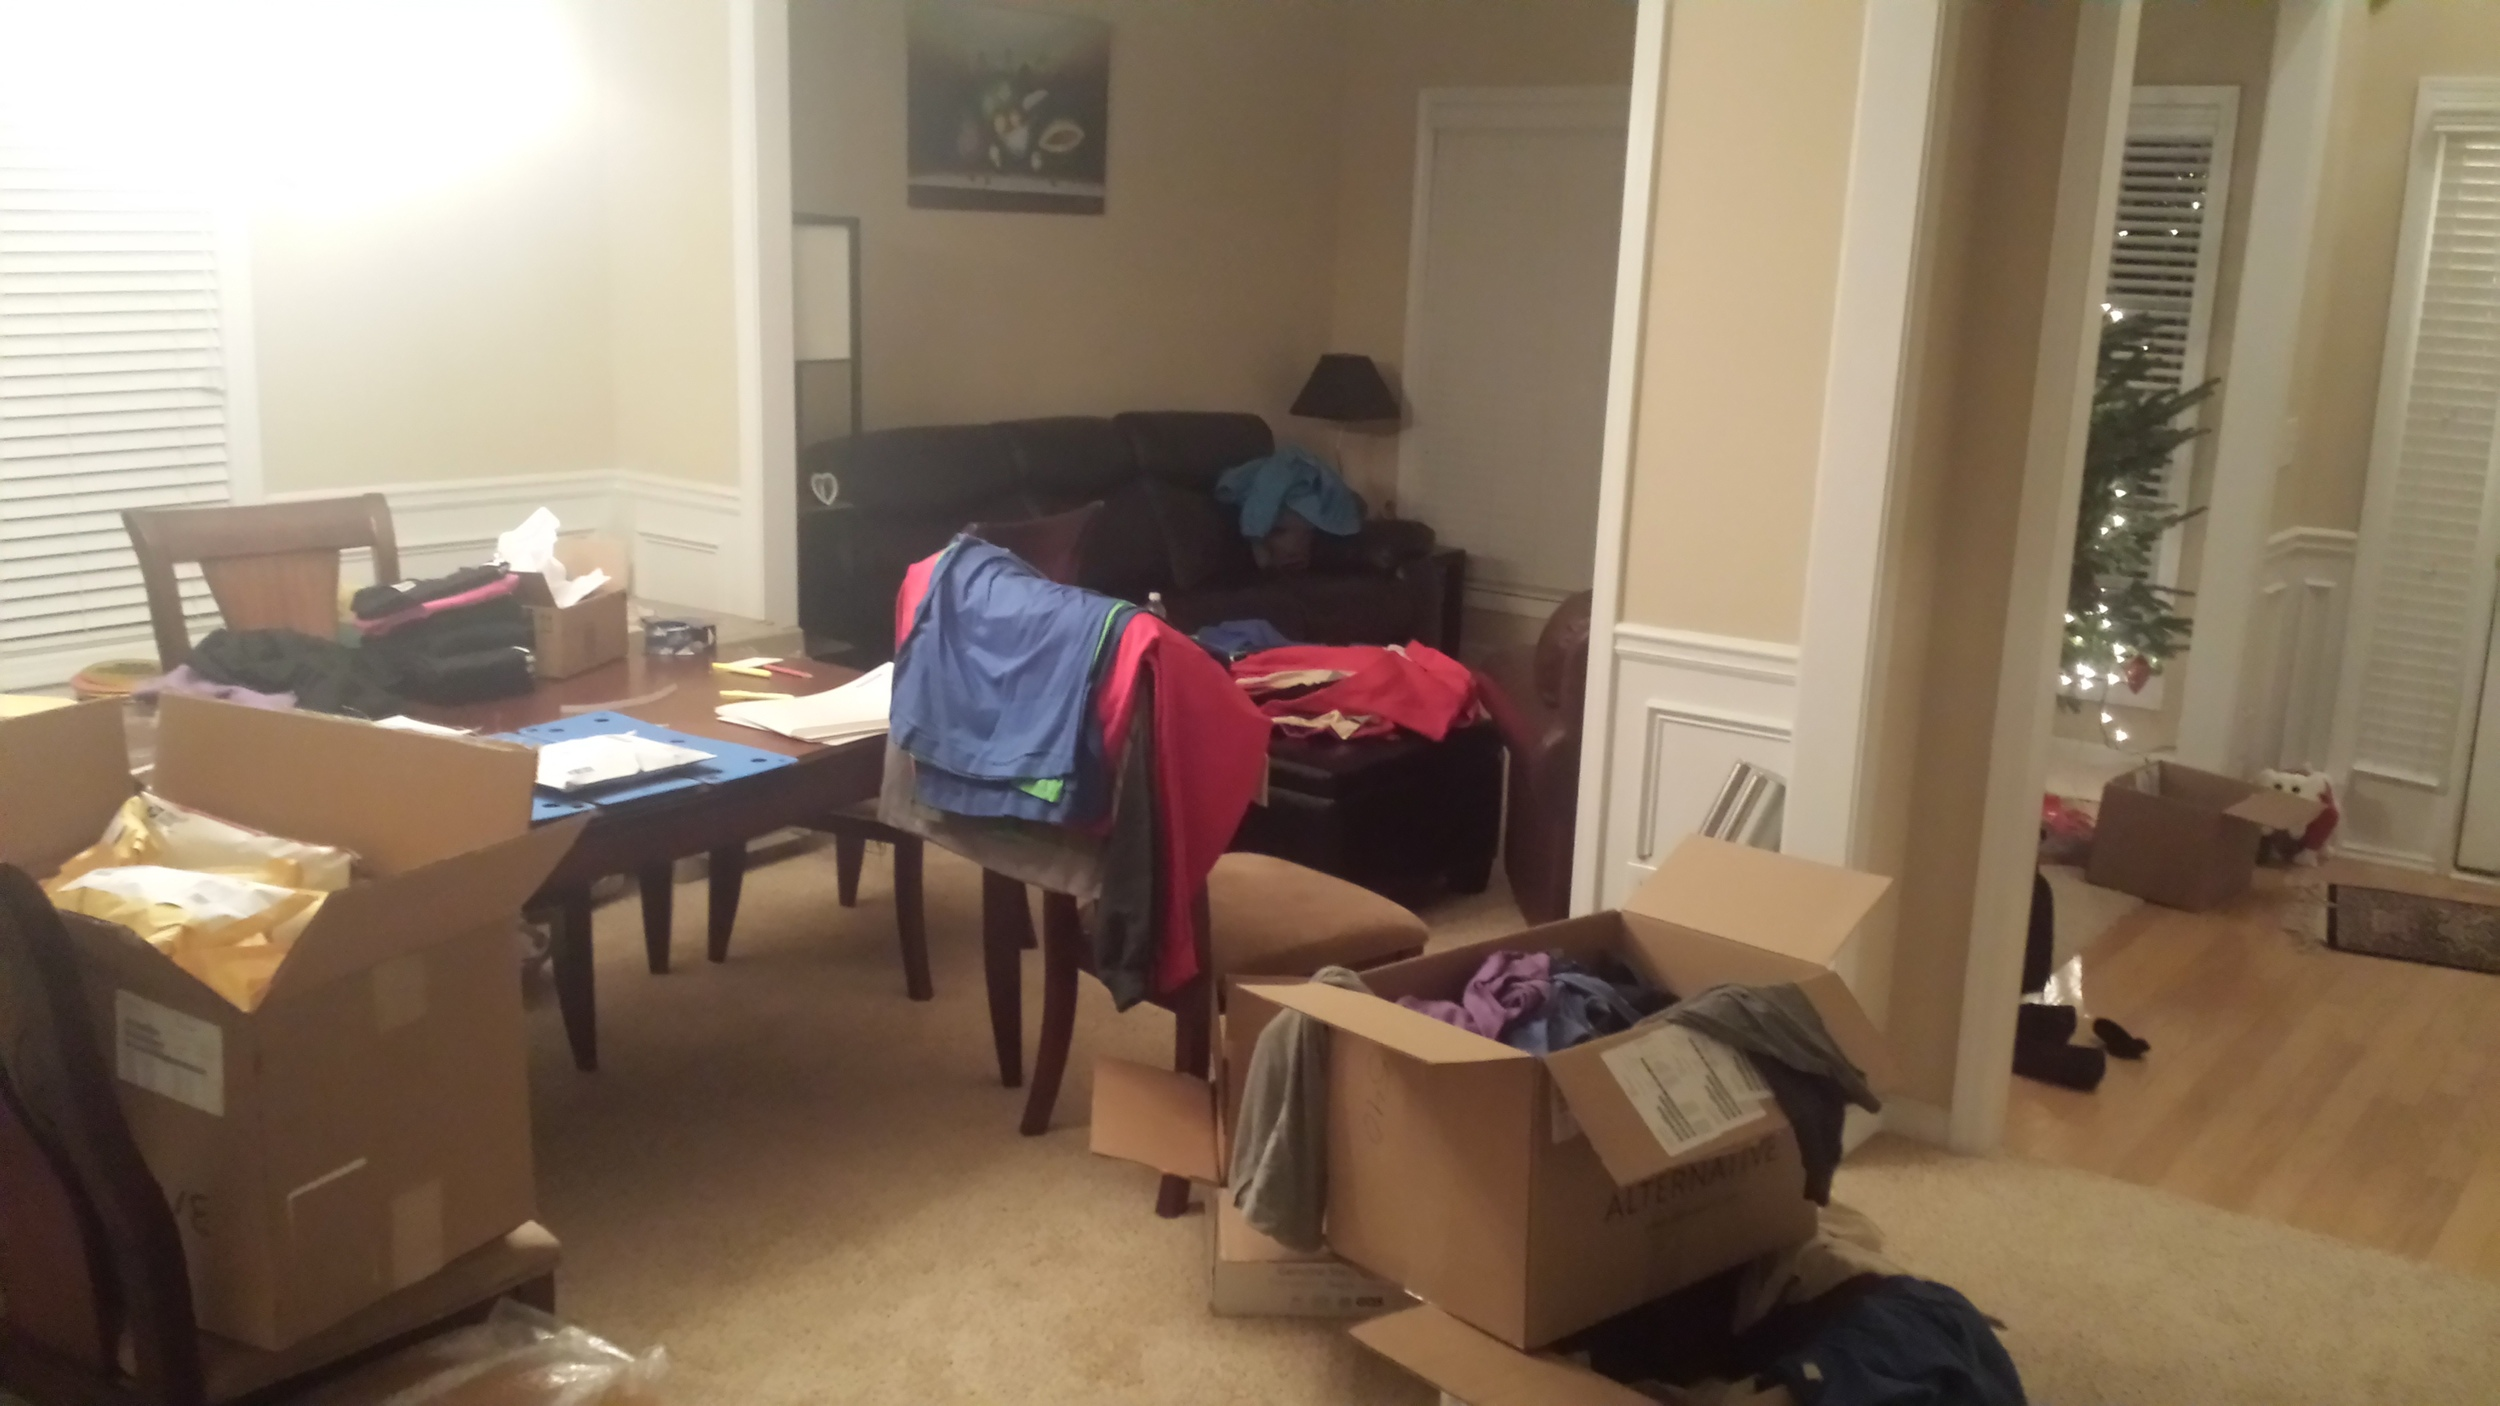 Our first folding and shipping area formerly known as the dining room.